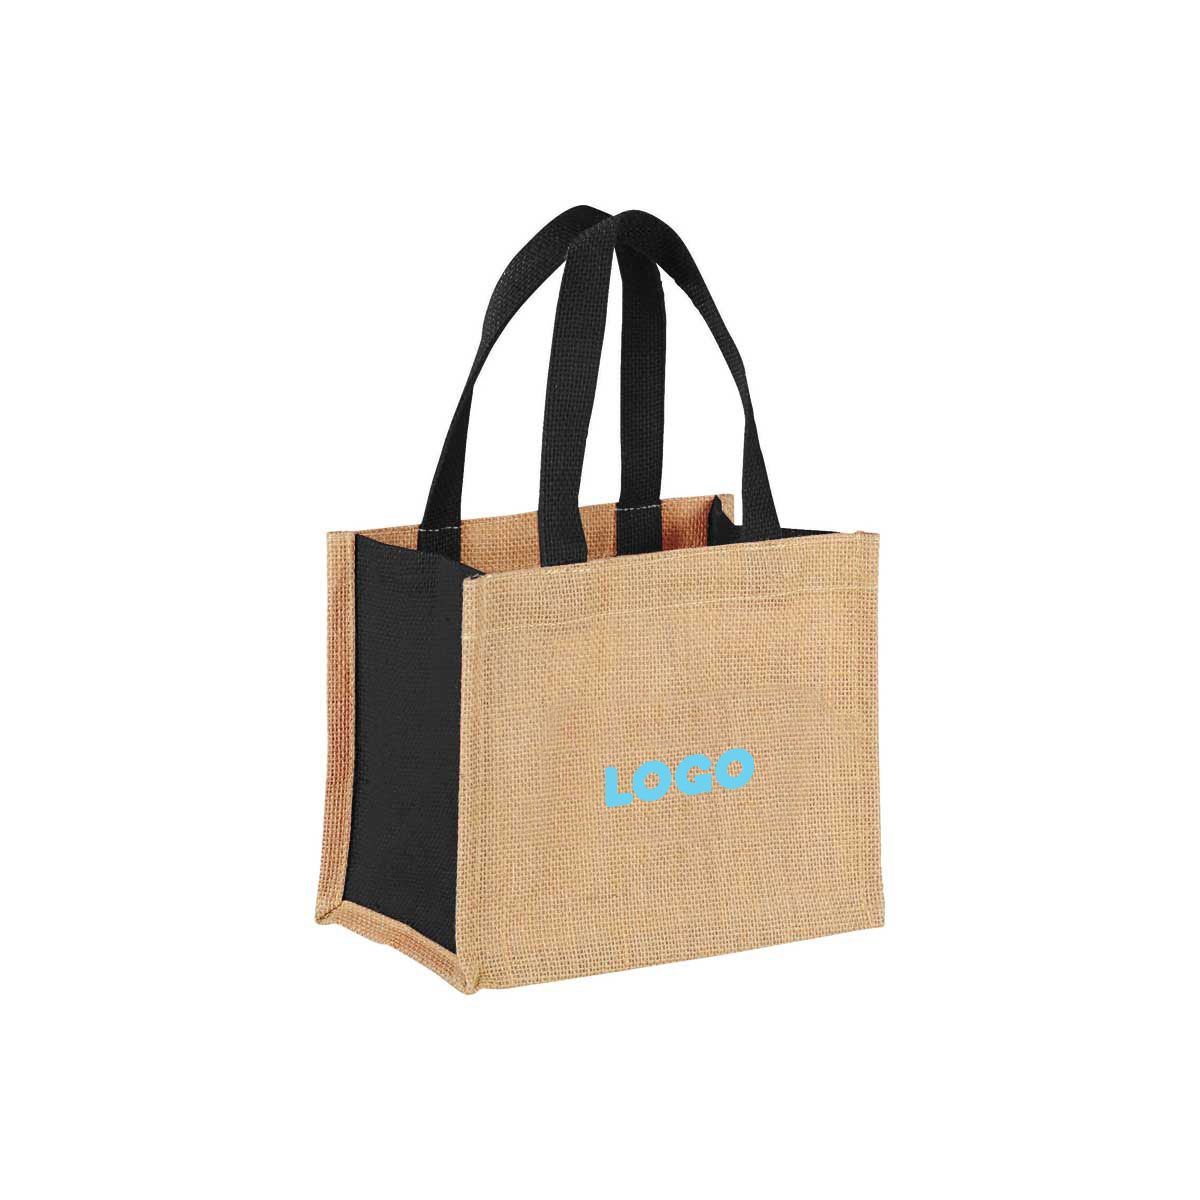 137880 gift jute tote one color one location imprint